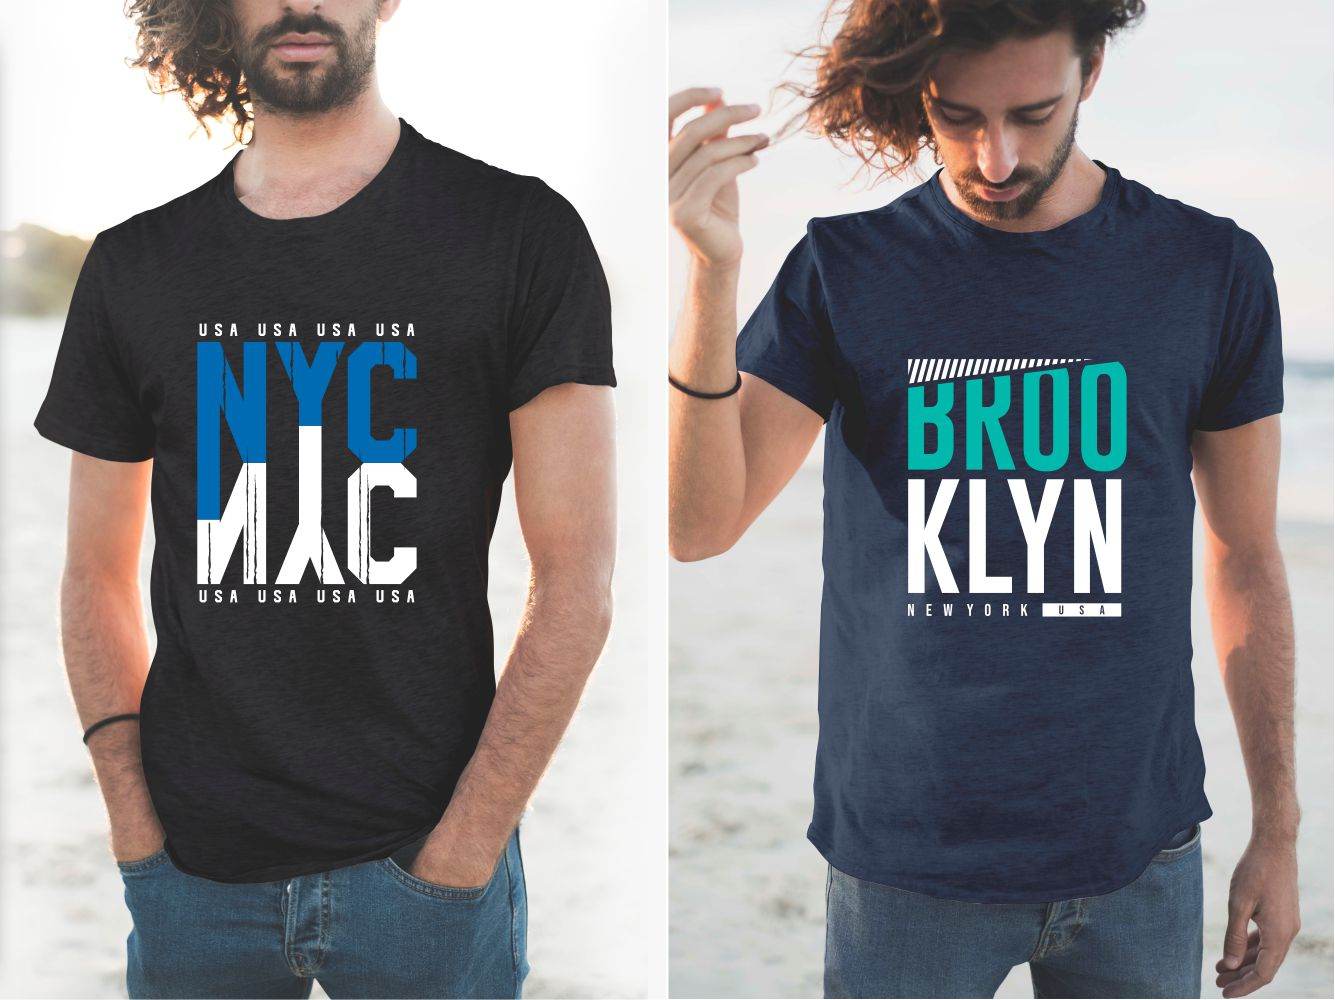 Modern men's T-shirts with beautiful inscriptions and stylish designs.